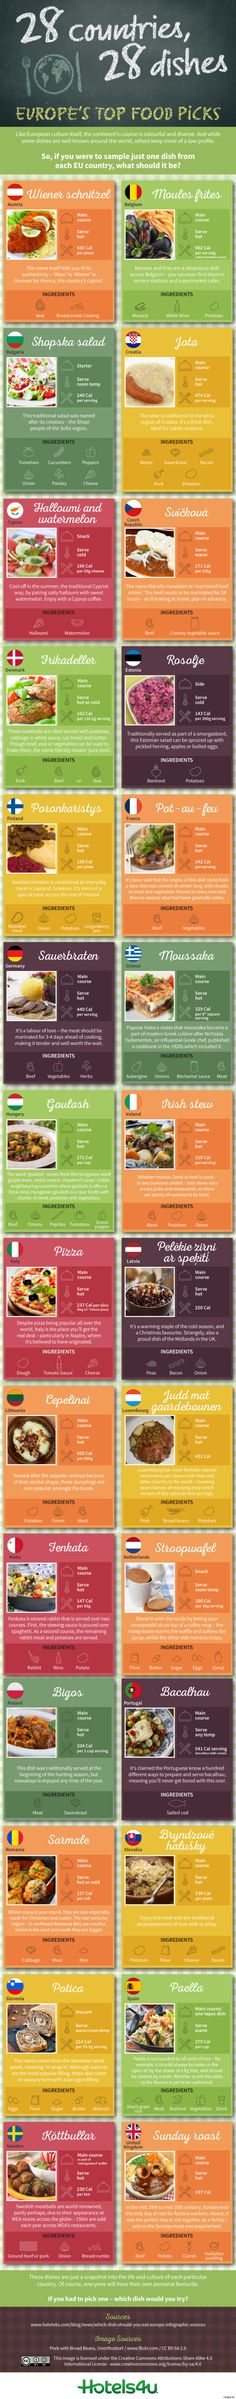 The ONE Dish You Must Eat In 28 European Countries